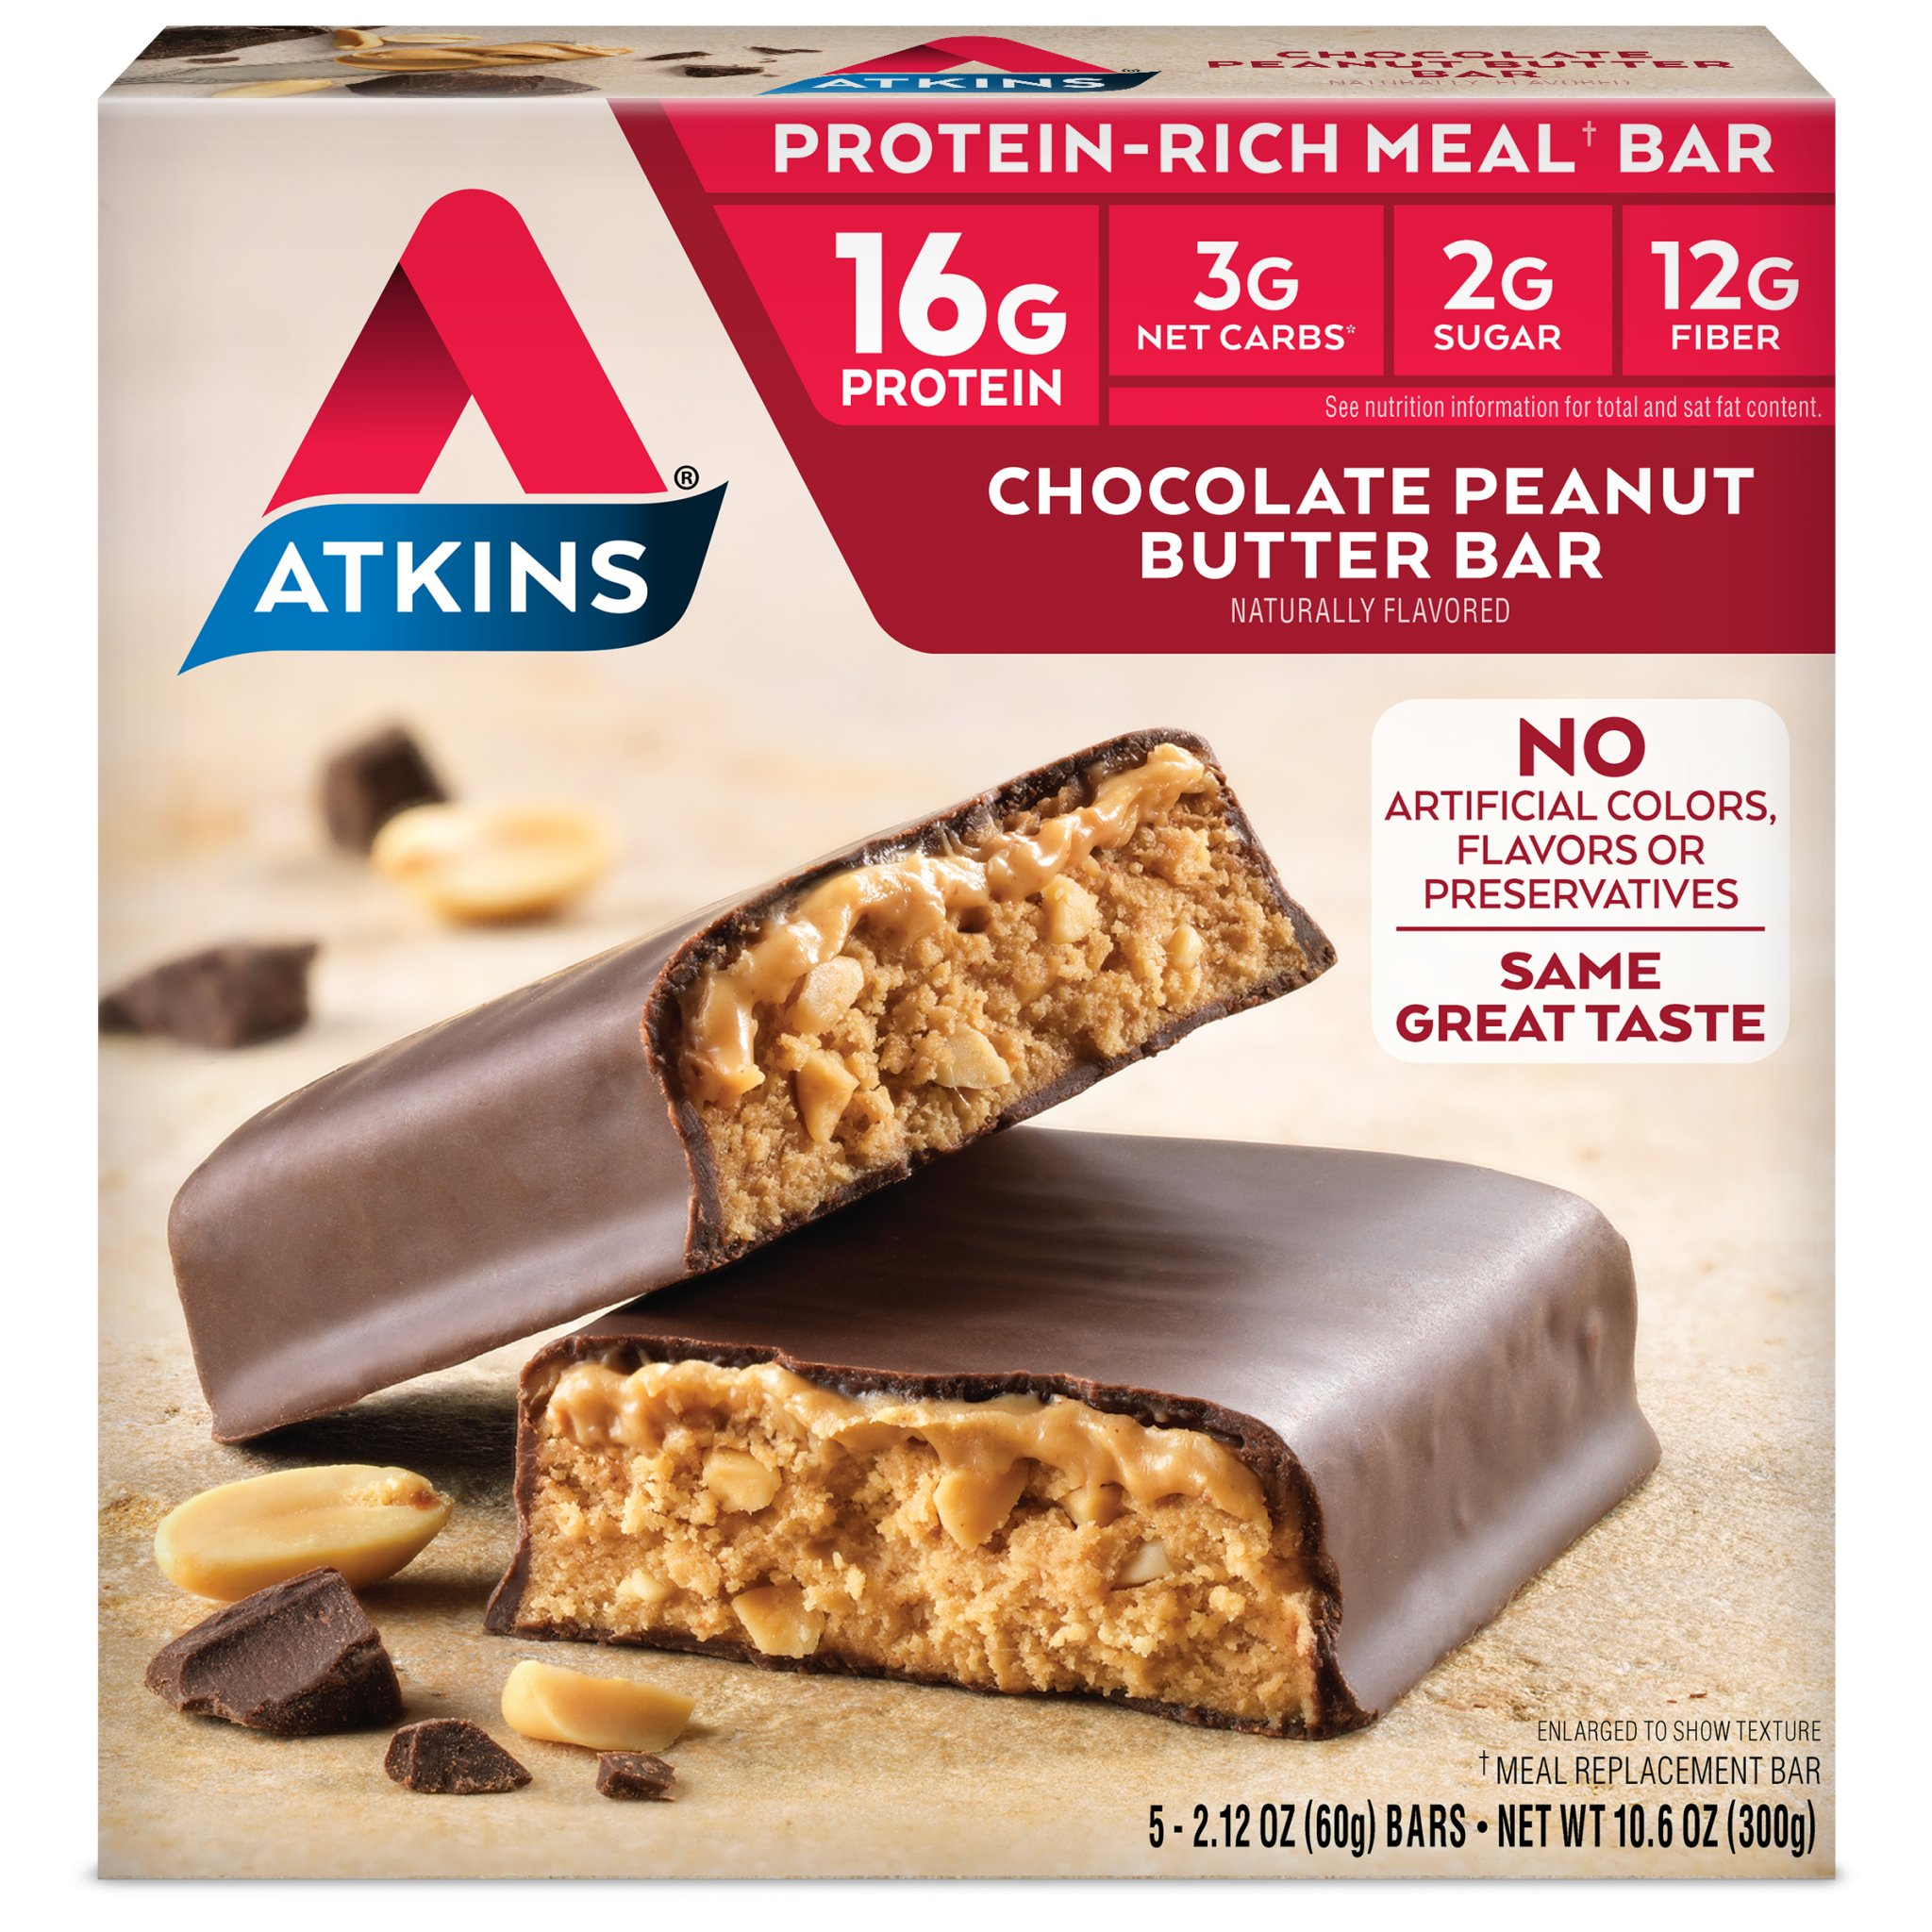 Atkins Protein-Rich Meal Bar, Chocolate Peanut Butter, Keto Friendly, 5 Count by Atkins